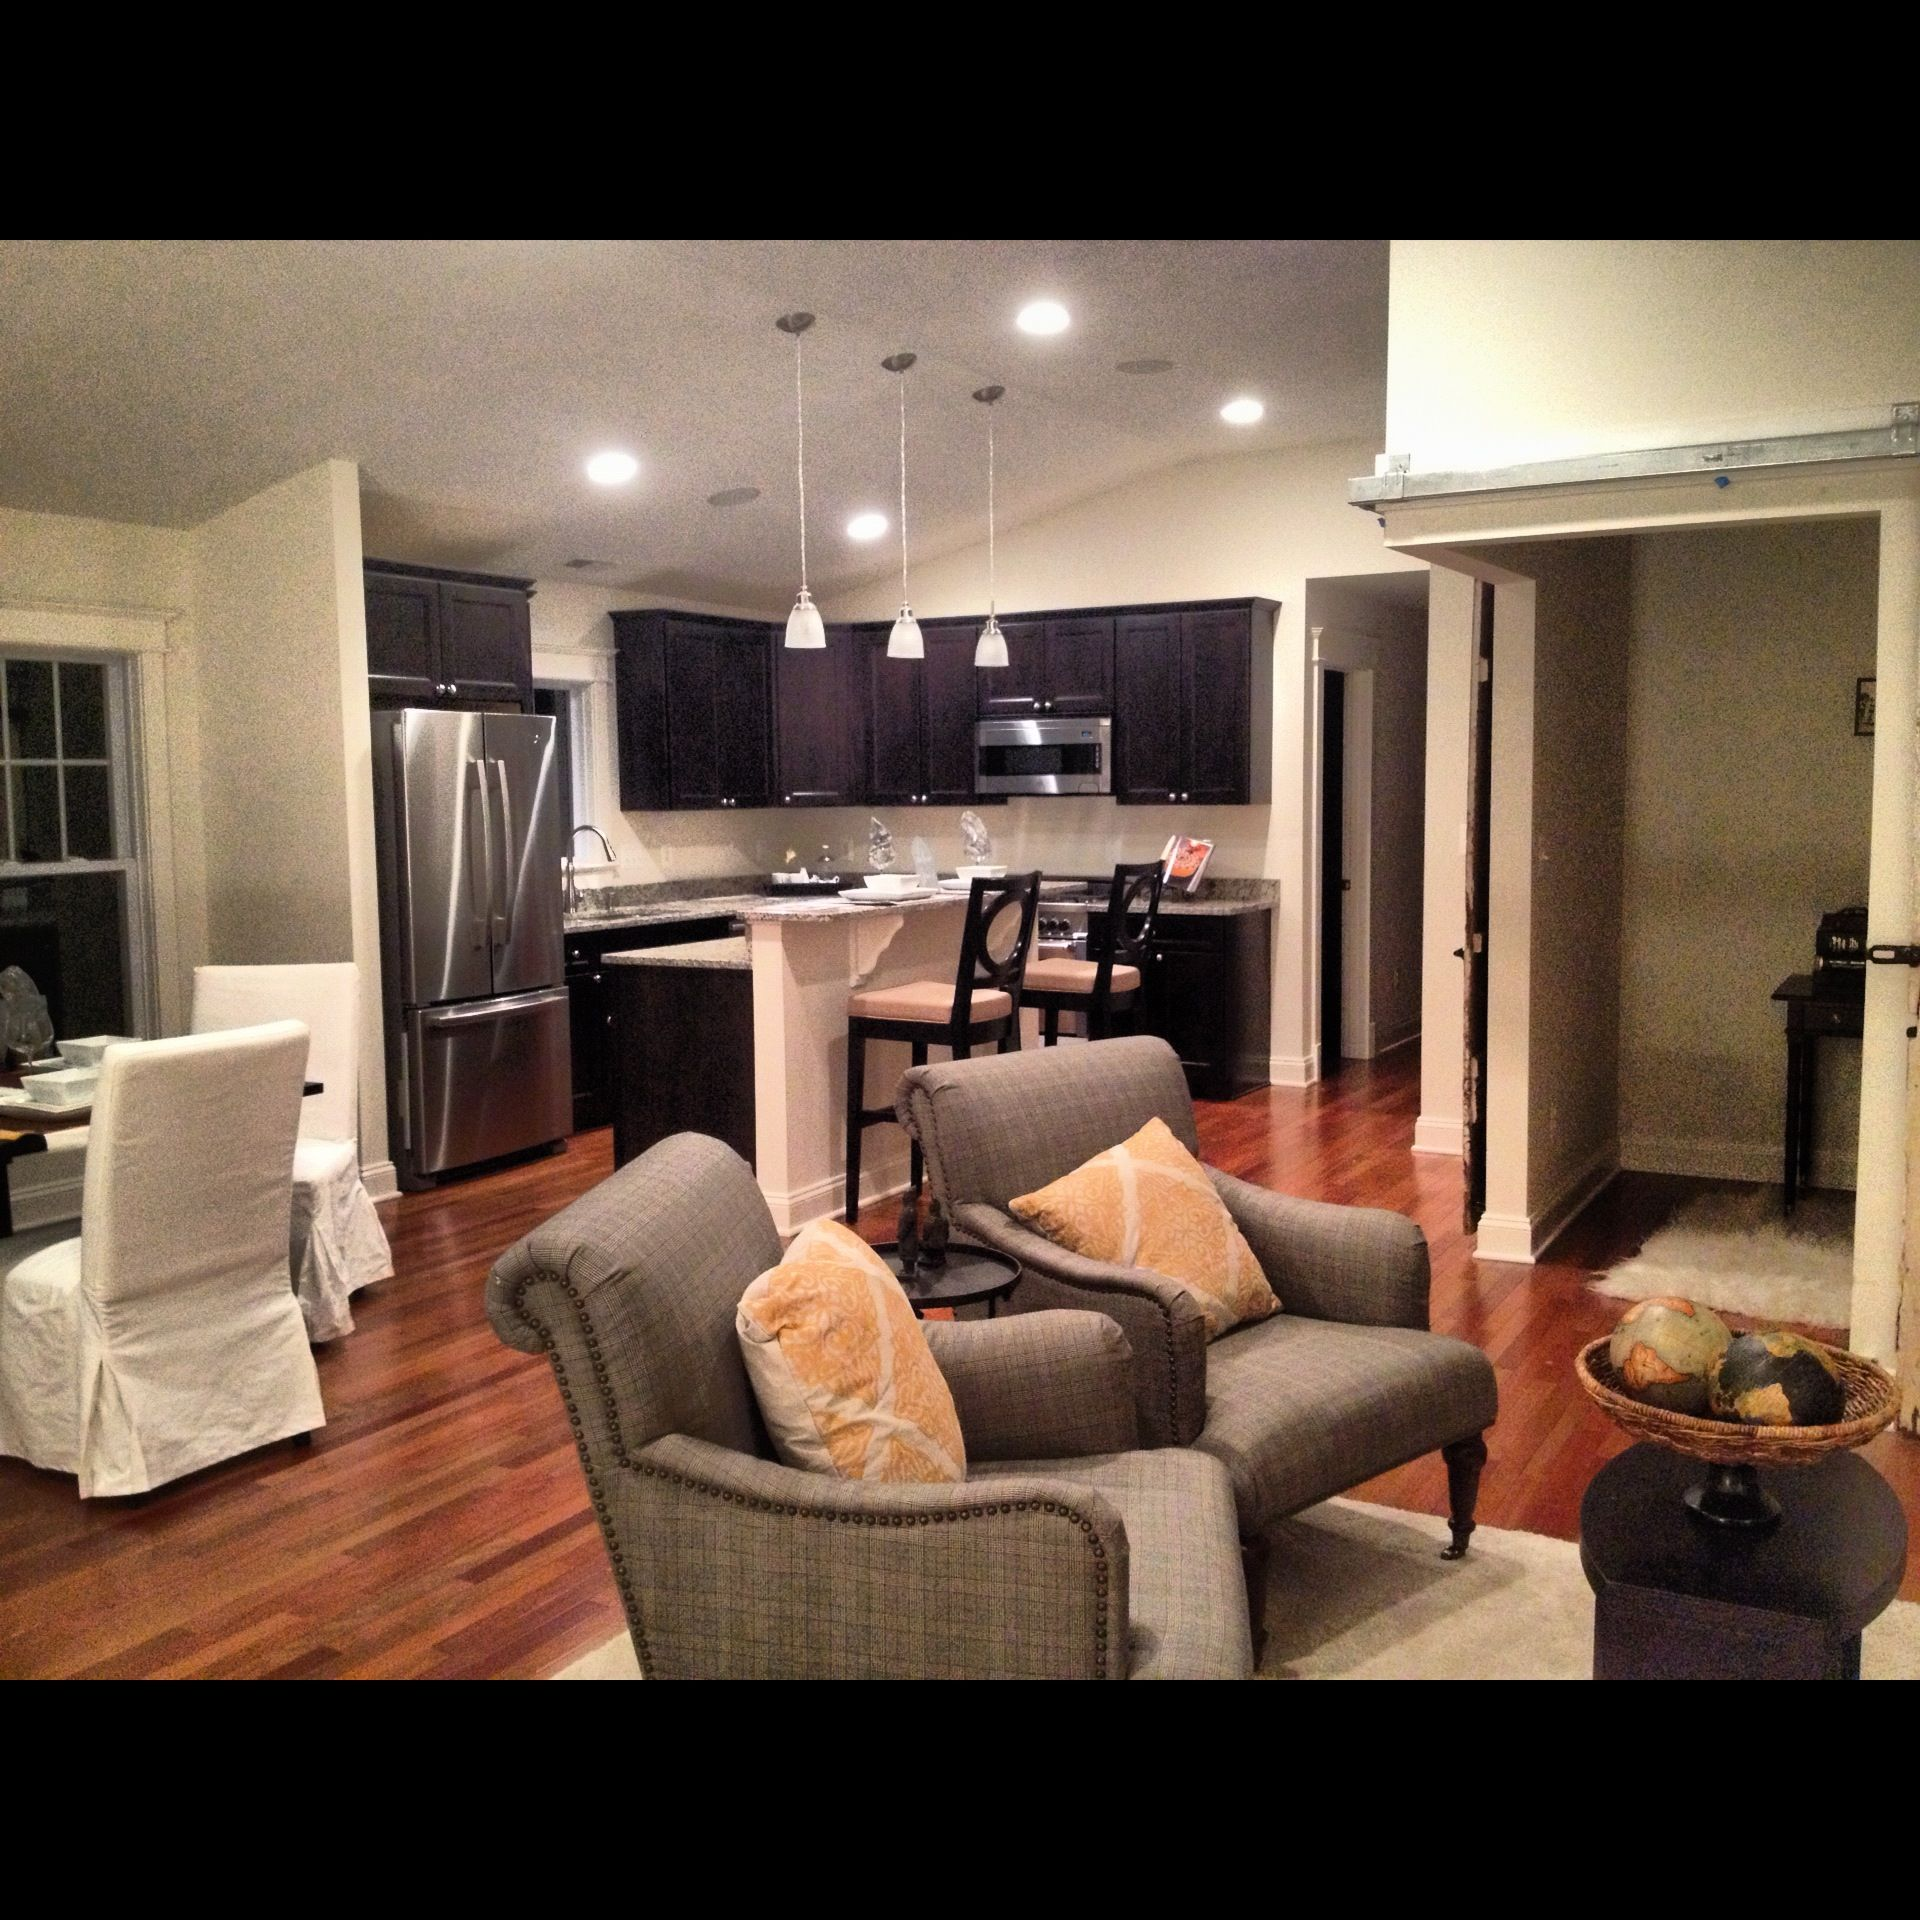 Dining Room Kitchen Combo Remodels: Open Floor Plan With Combo Living Room, Kitchen And Dining